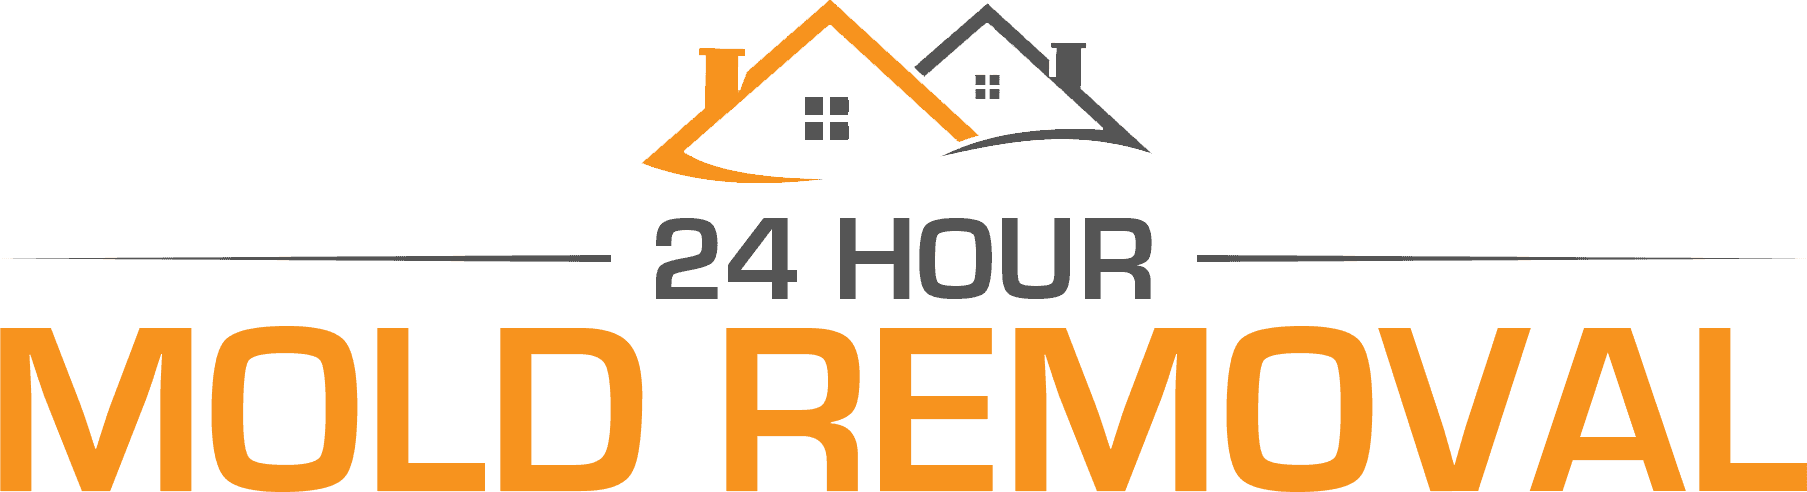 24 Hour Mold Removal Logo